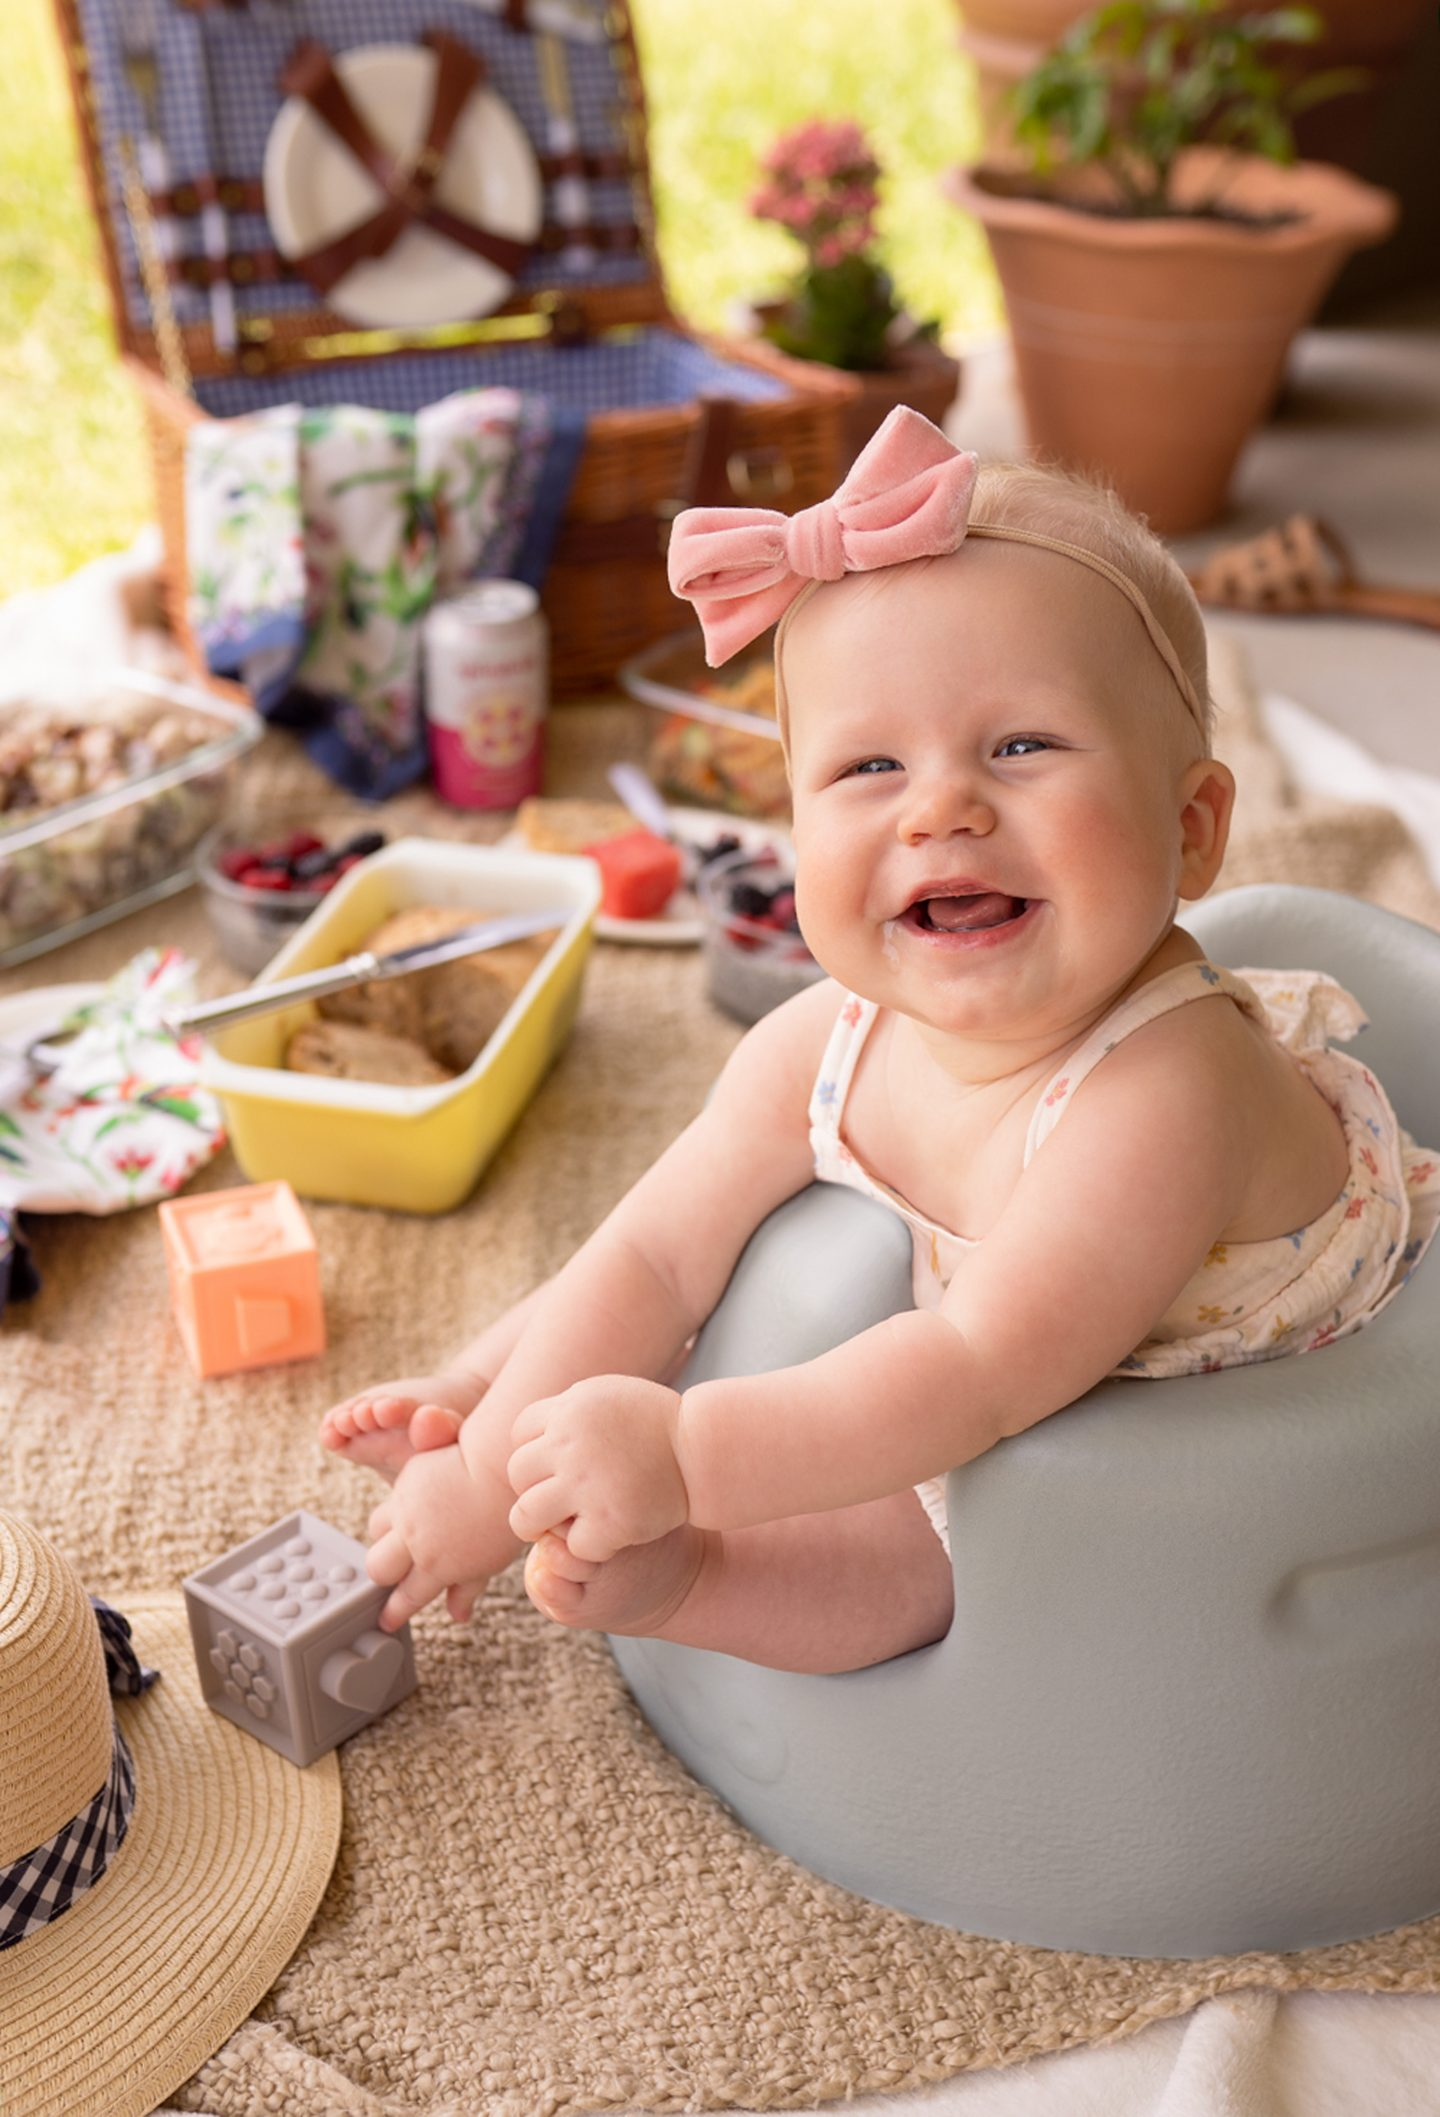 baby with headband smiling